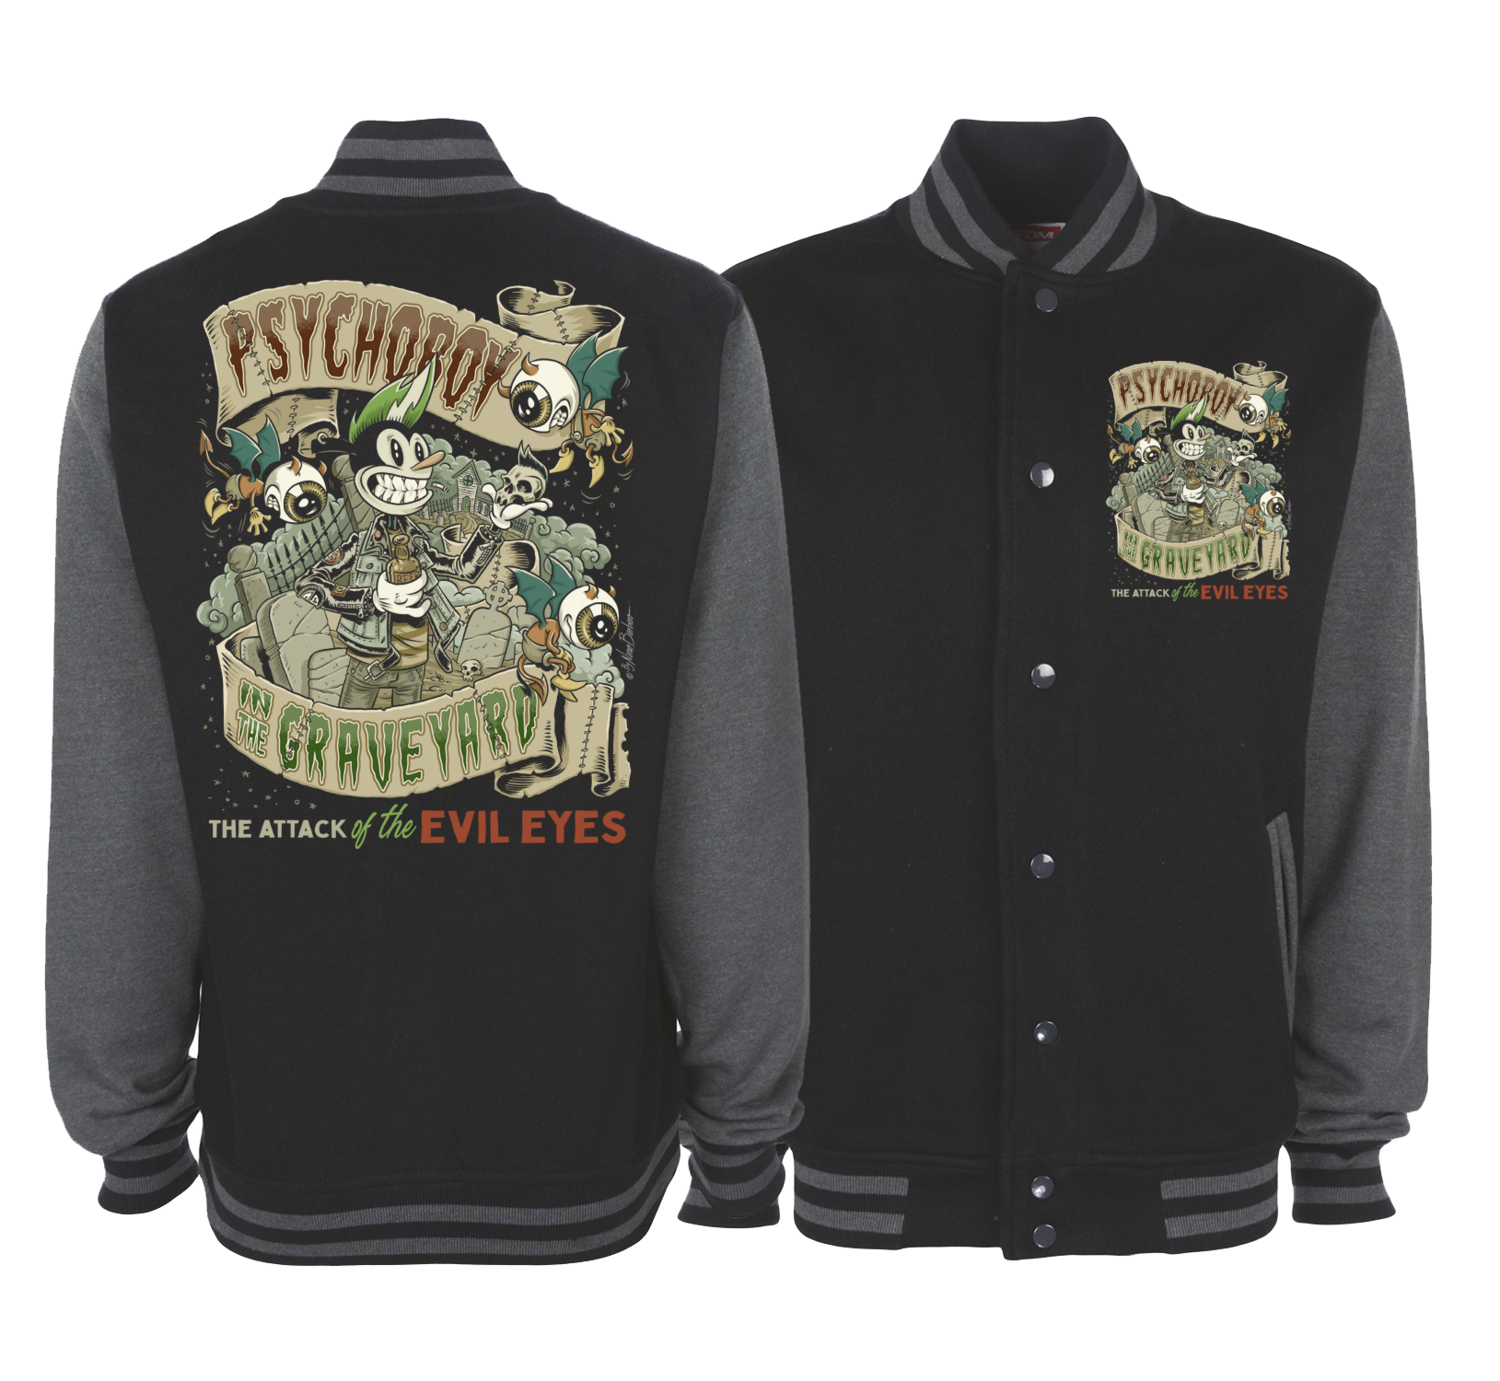 PSYCHO BOY VARSITY JACKET UNISEX BY NANO BARBERO